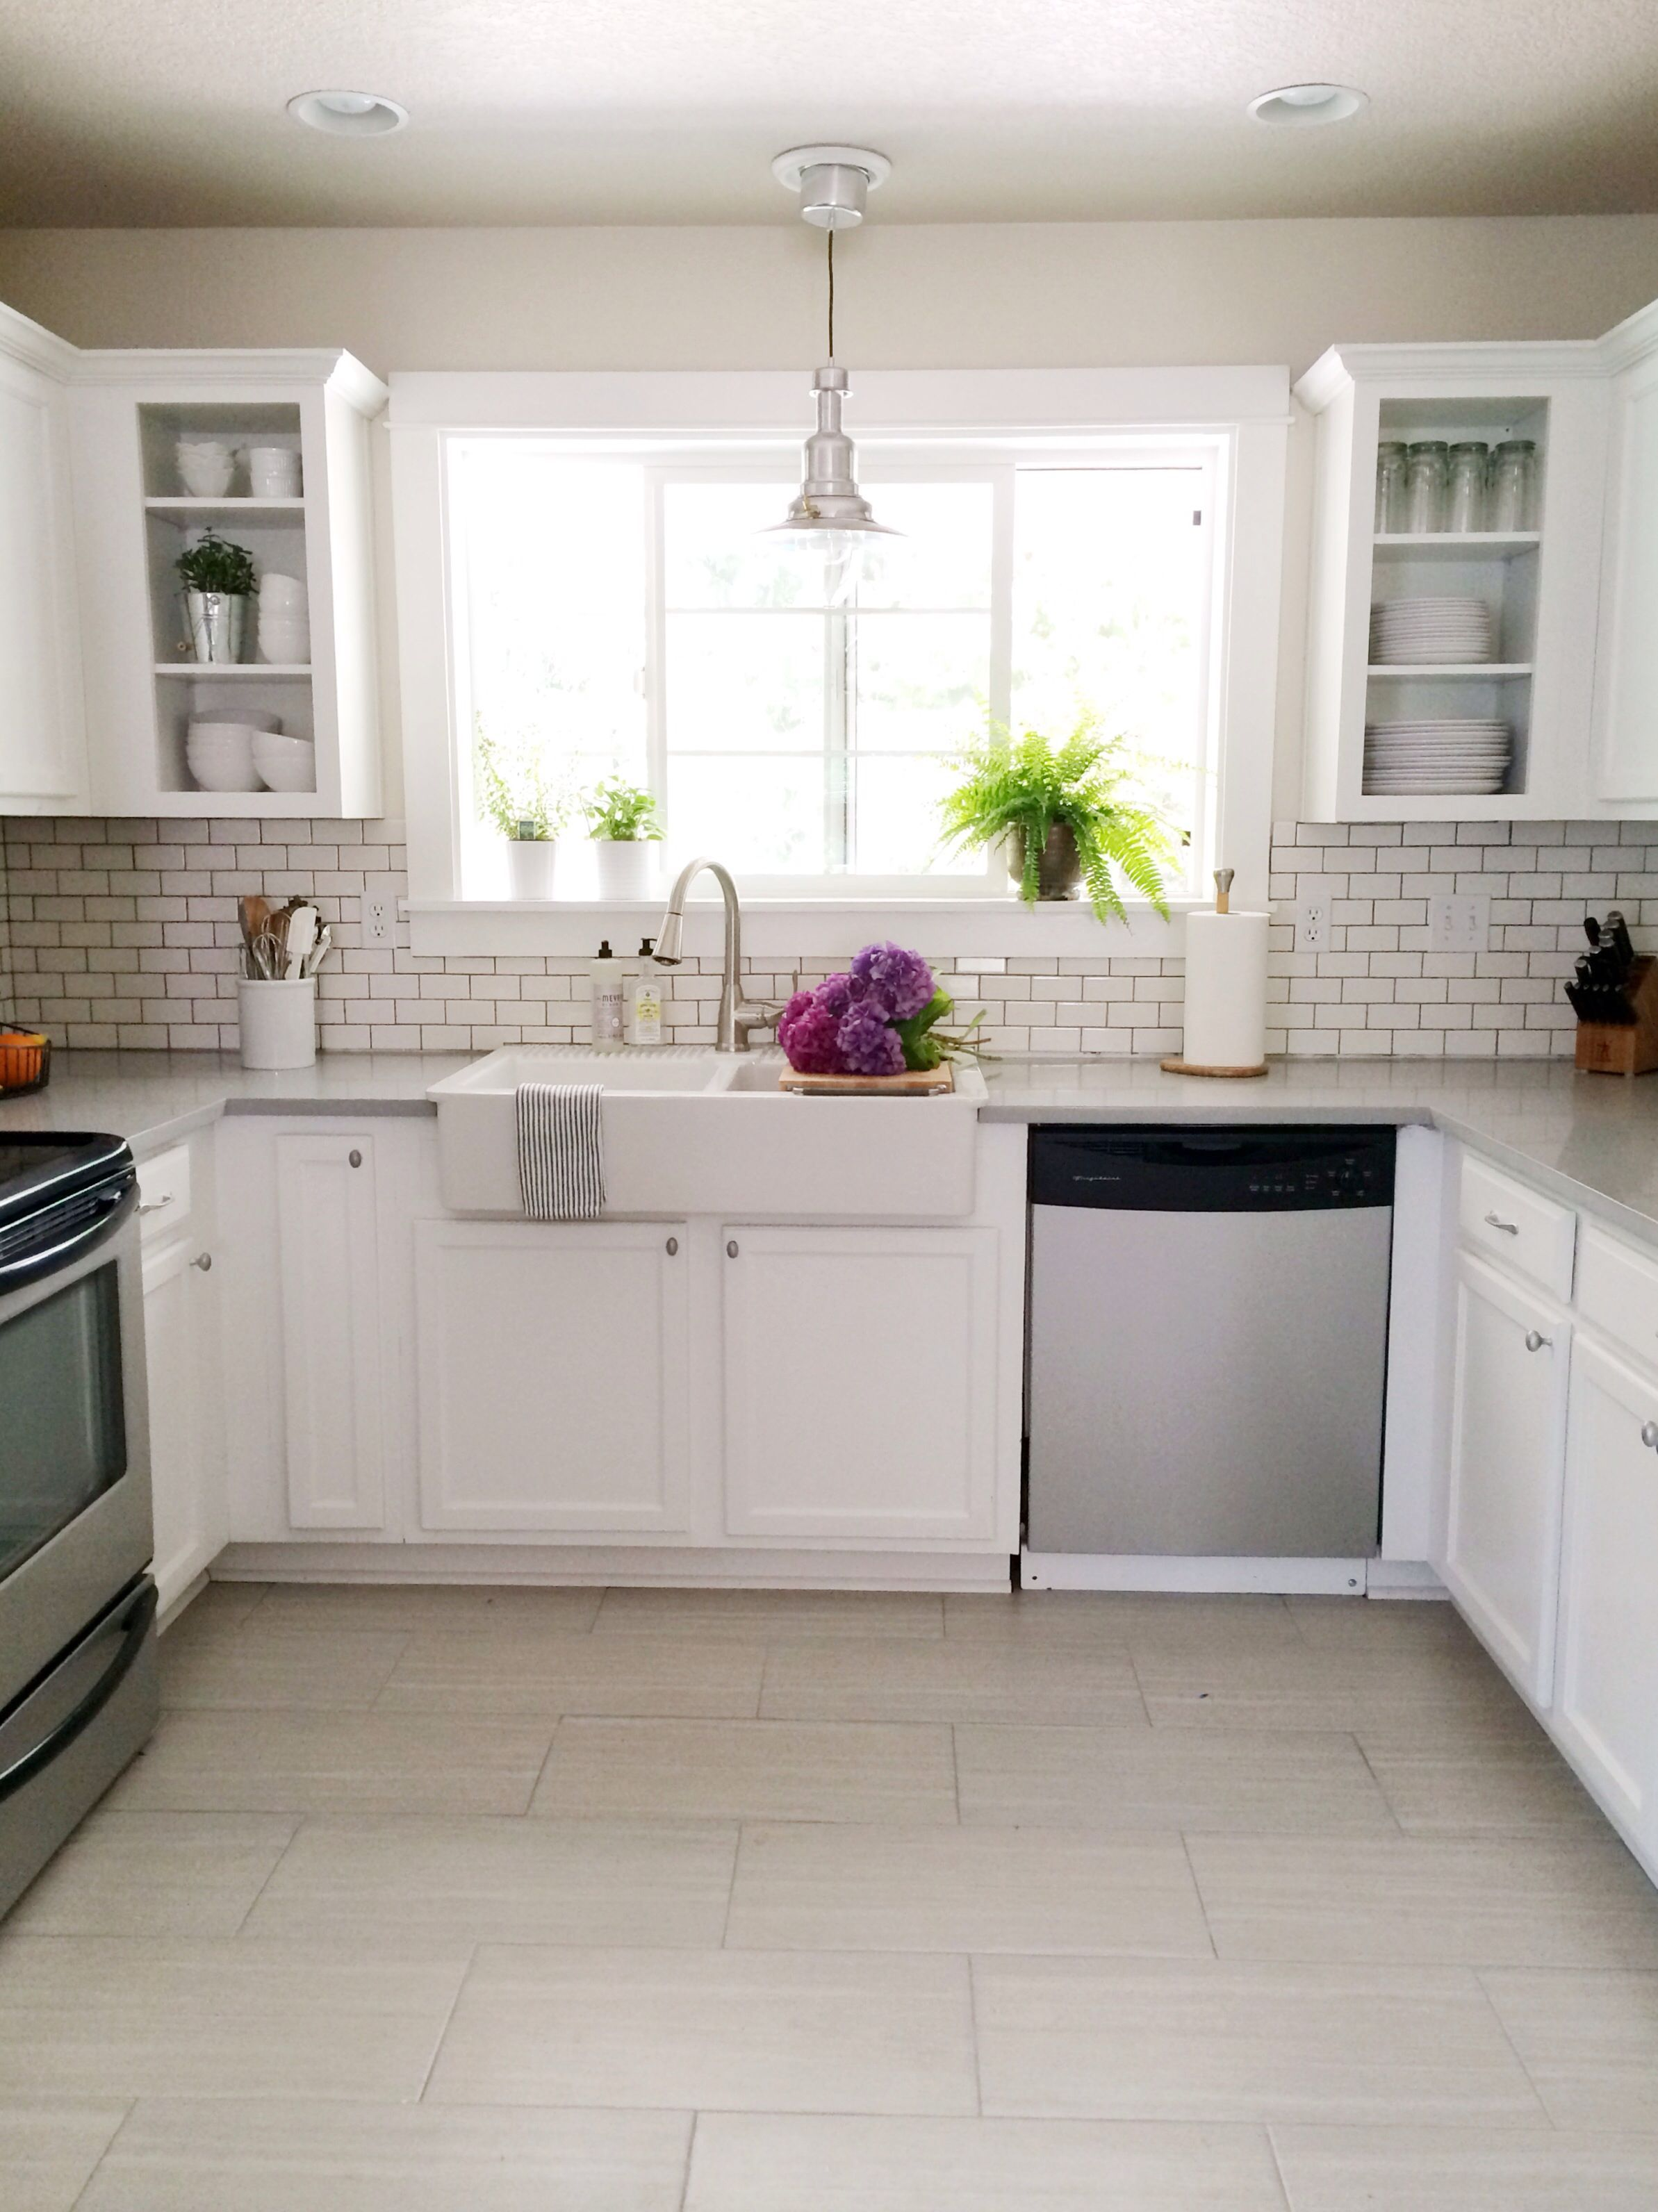 don t feel limited by a small kitchen space get design inspiration from these charming small on t kitchen ideas id=39071